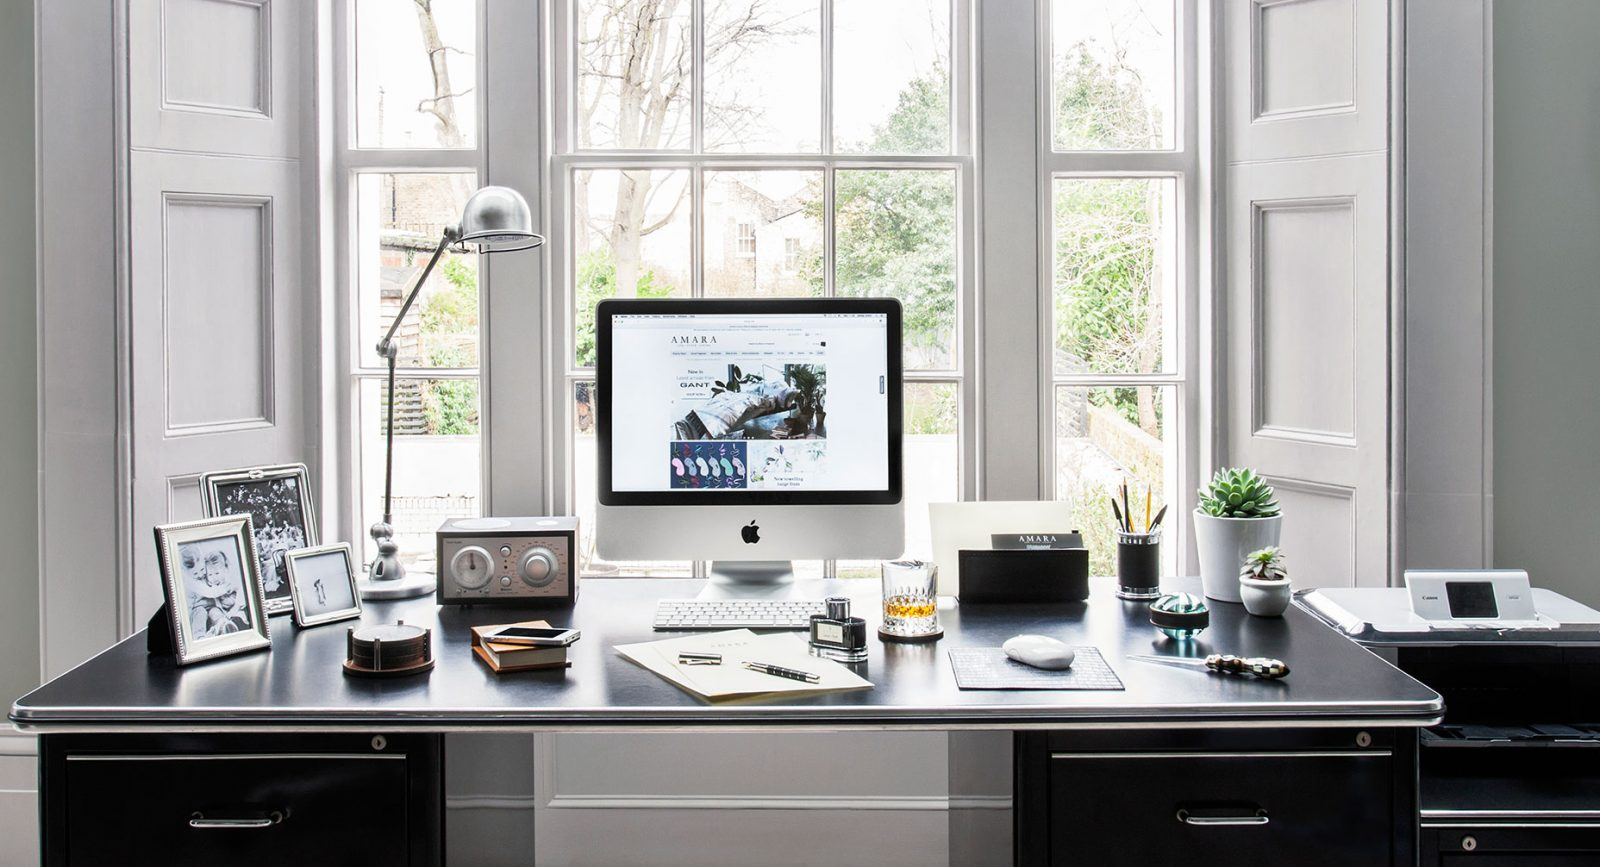 Working from Home? Design Your Ideal Home Office